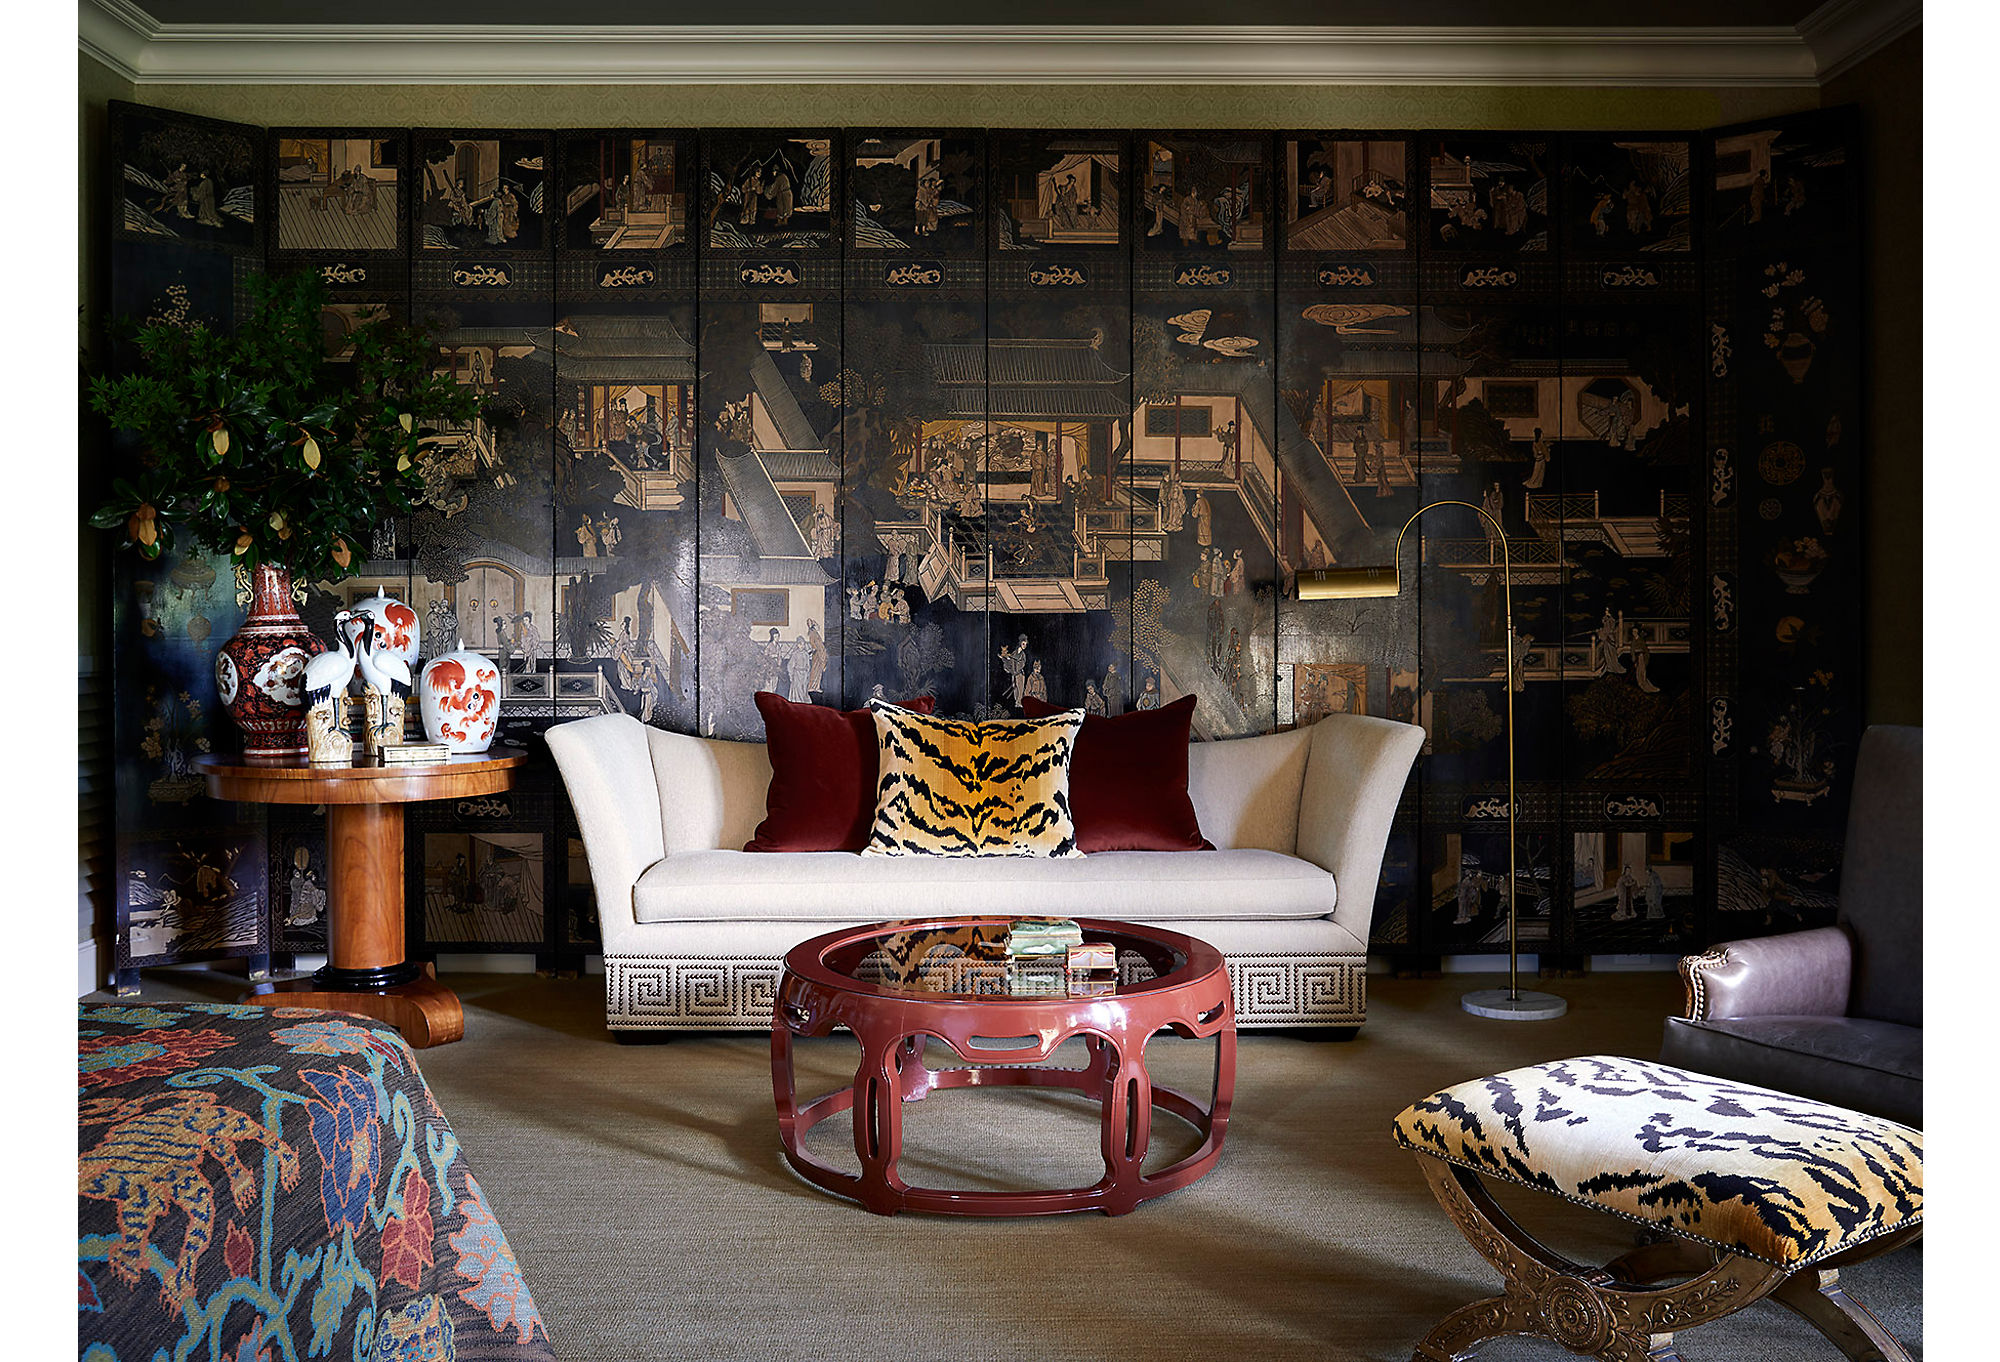 No master suite is complete without a sitting area. Here, Dennis covered the entire wall with a 12-panel chinoiserie screen. He pulls in more traditional elements with Greek key detailing on the sofa.